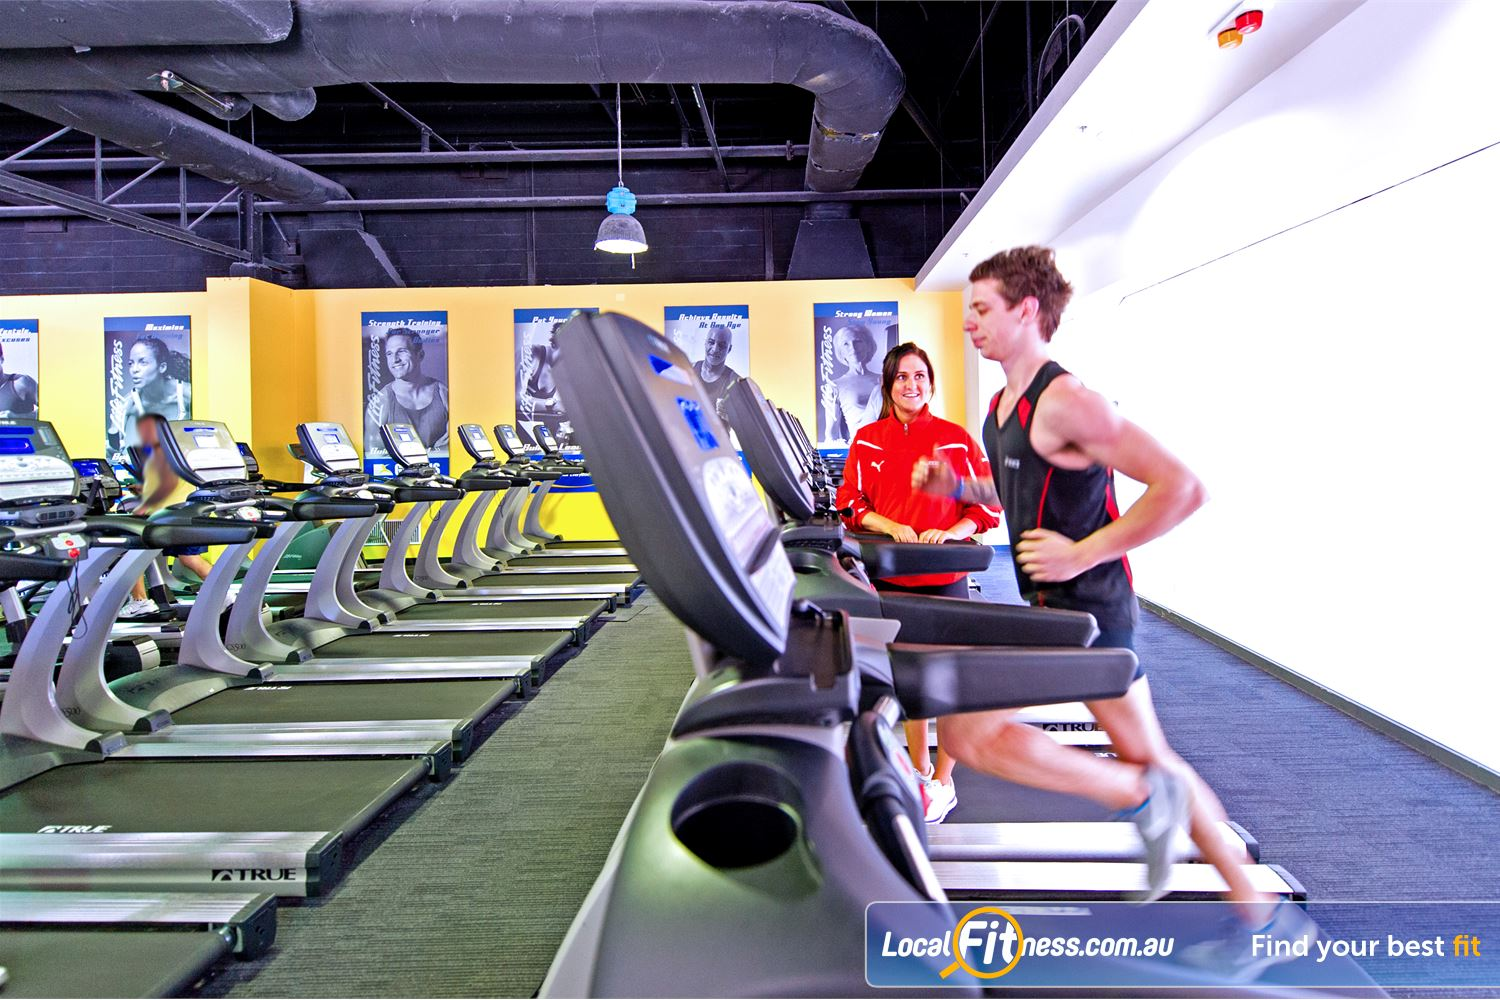 Vibe Health Clubs Blacktown Blacktown gym instructors can fast-track your cardio and weight-loss goals.